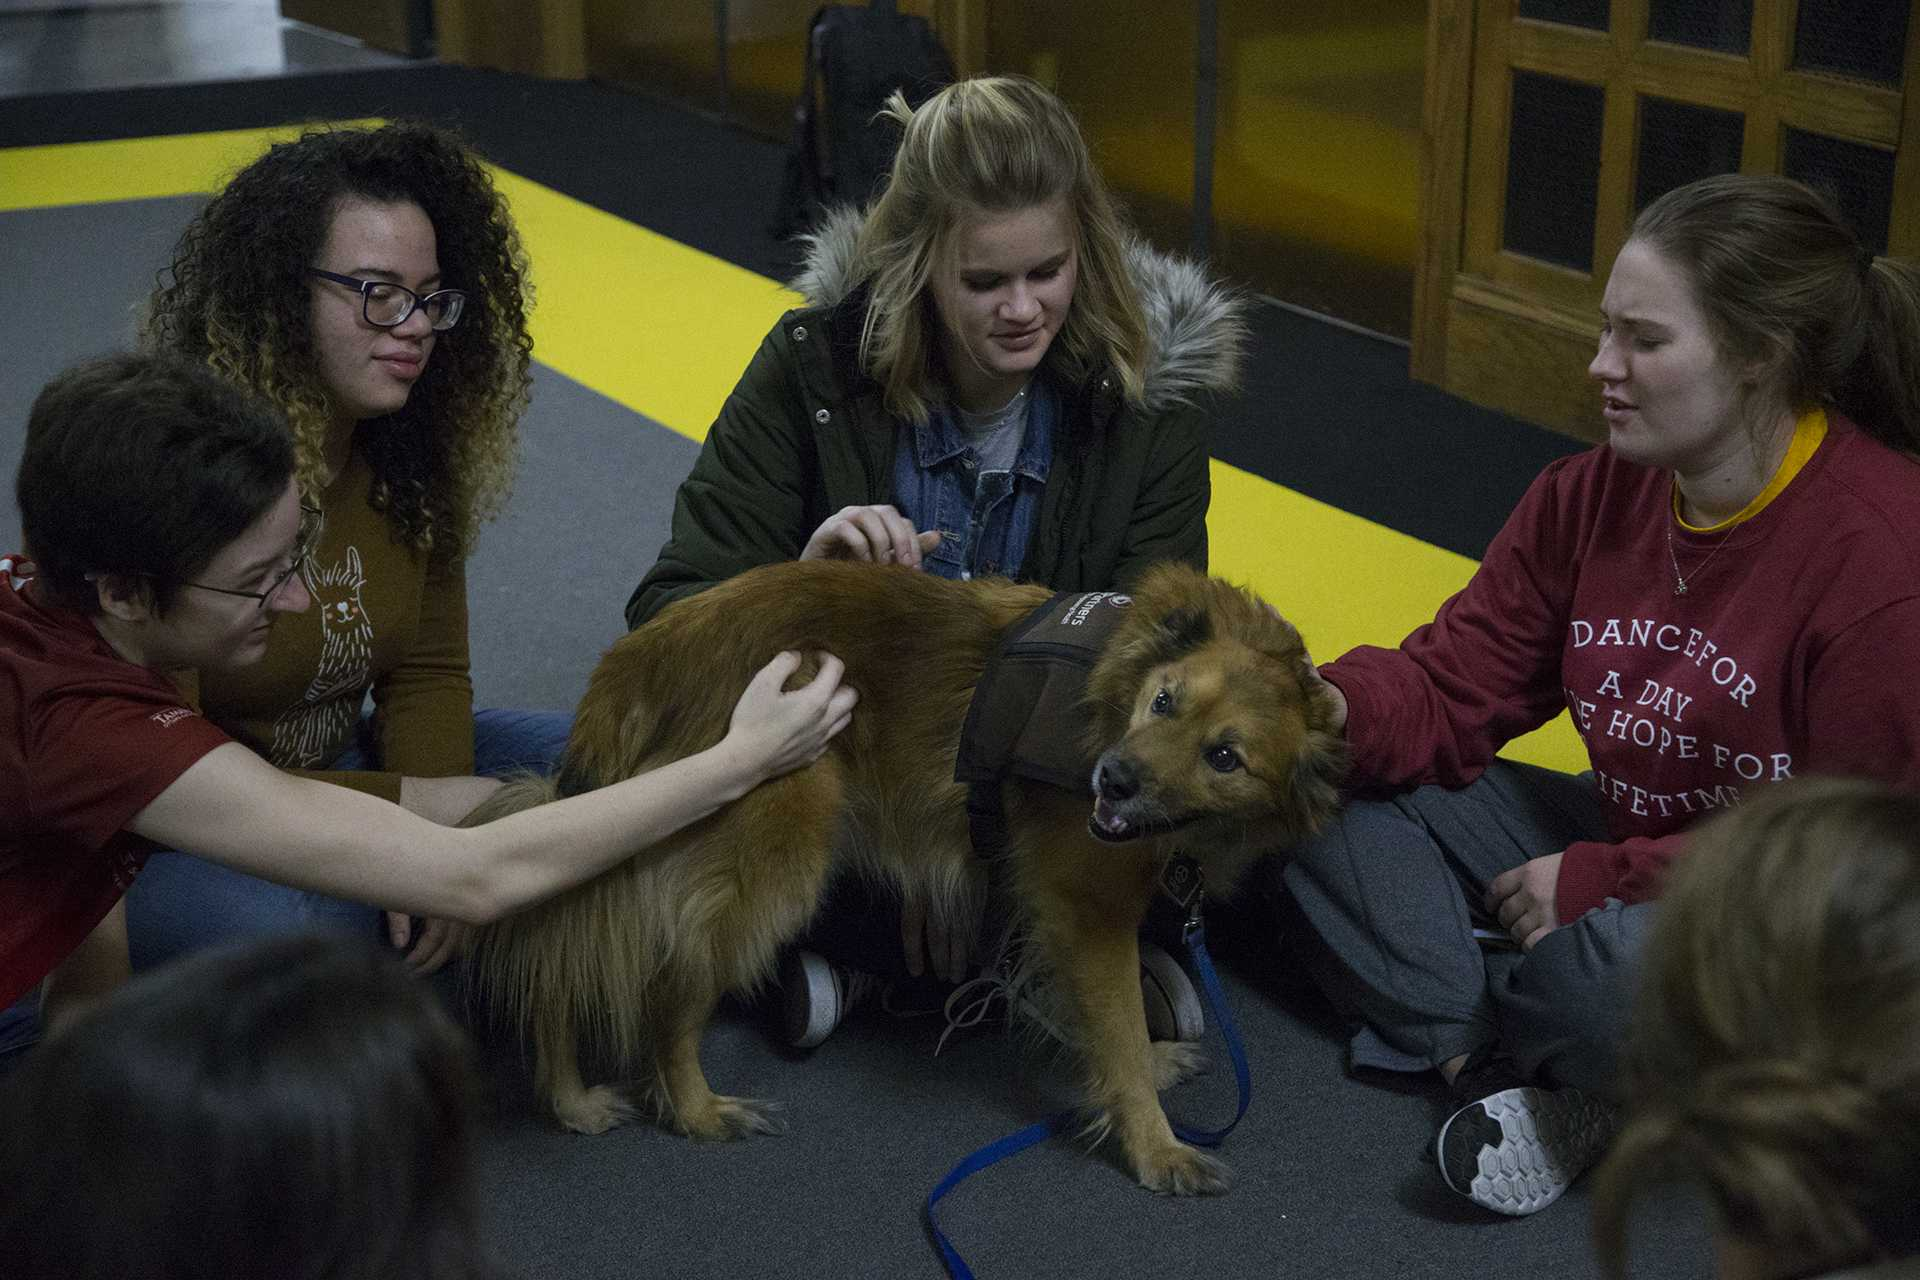 Students pet dogs during UIowa Paws event at the IMU on Monday December 11, 2017. UIowa Paws (promoting animal welfare) will have therapy dogs from Cedar Rapids and Johnson County at the IMU from Monday to Wednesday to promote mental wellness during finals.(Katie Goodale/ The Daily Iowan)